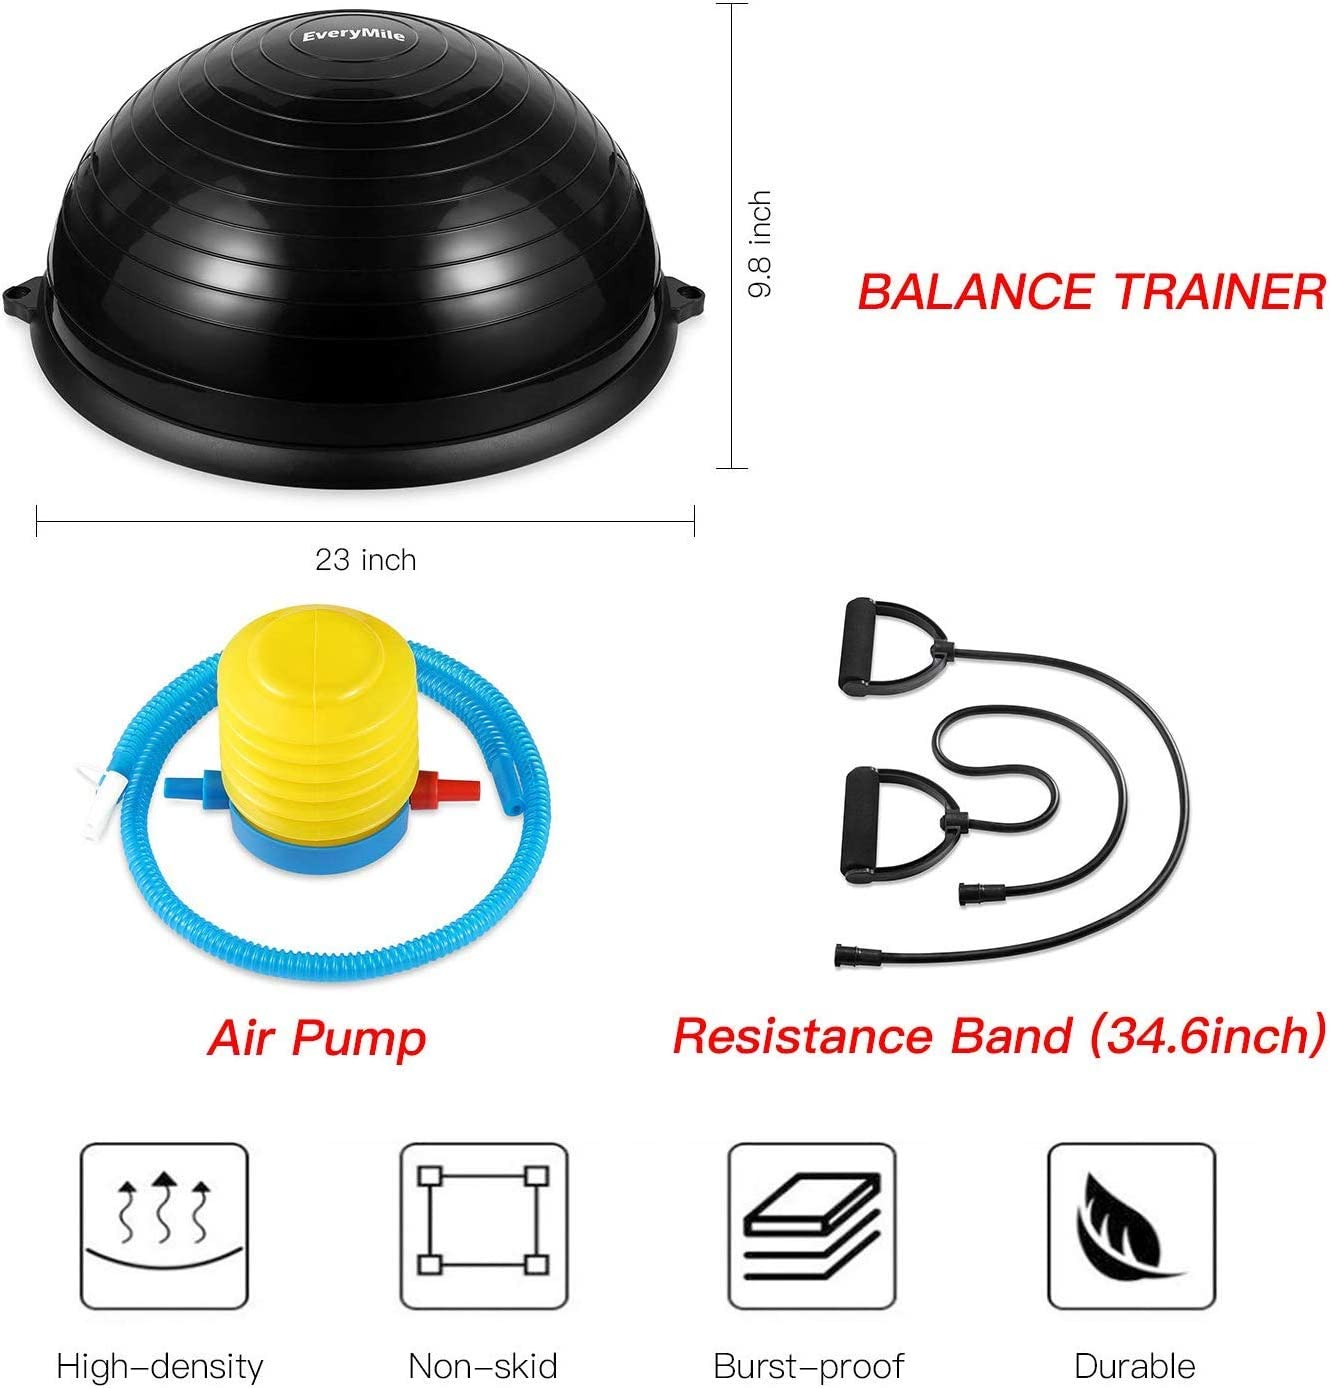 EveryMile Half Ball Balance Trainer Balance Ball Stability Yoga Exercise Ball with Resistance Bands /& Pump for Home Gym Core Training Ab Strength Workouts Yoga Fitness 23 inch Anti-Skid Surface